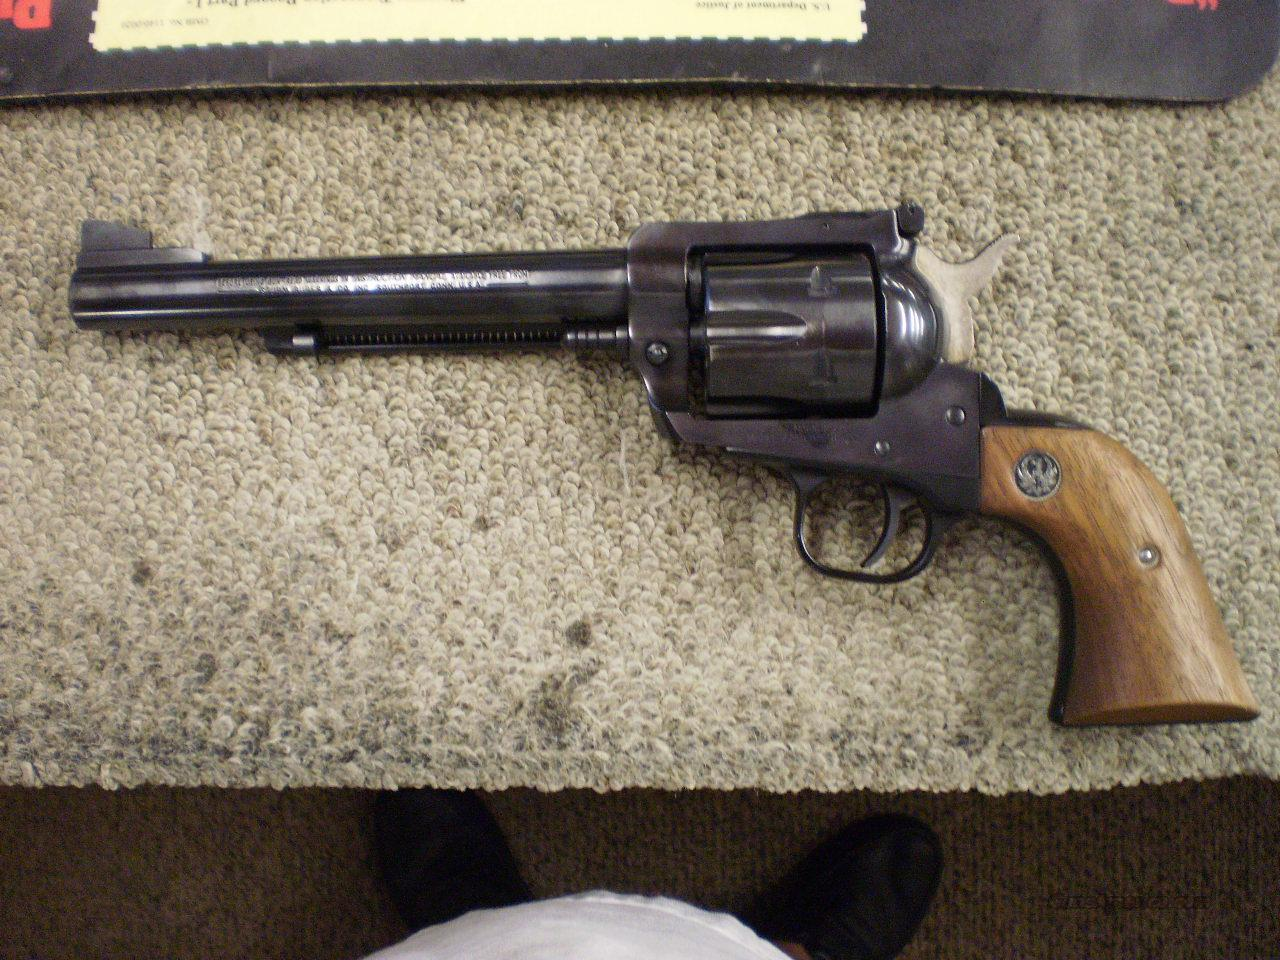 RUGER NEW MODEL BLACKHAWK 357 MAGNUM  Guns > Pistols > Ruger Single Action Revolvers > Blackhawk Type